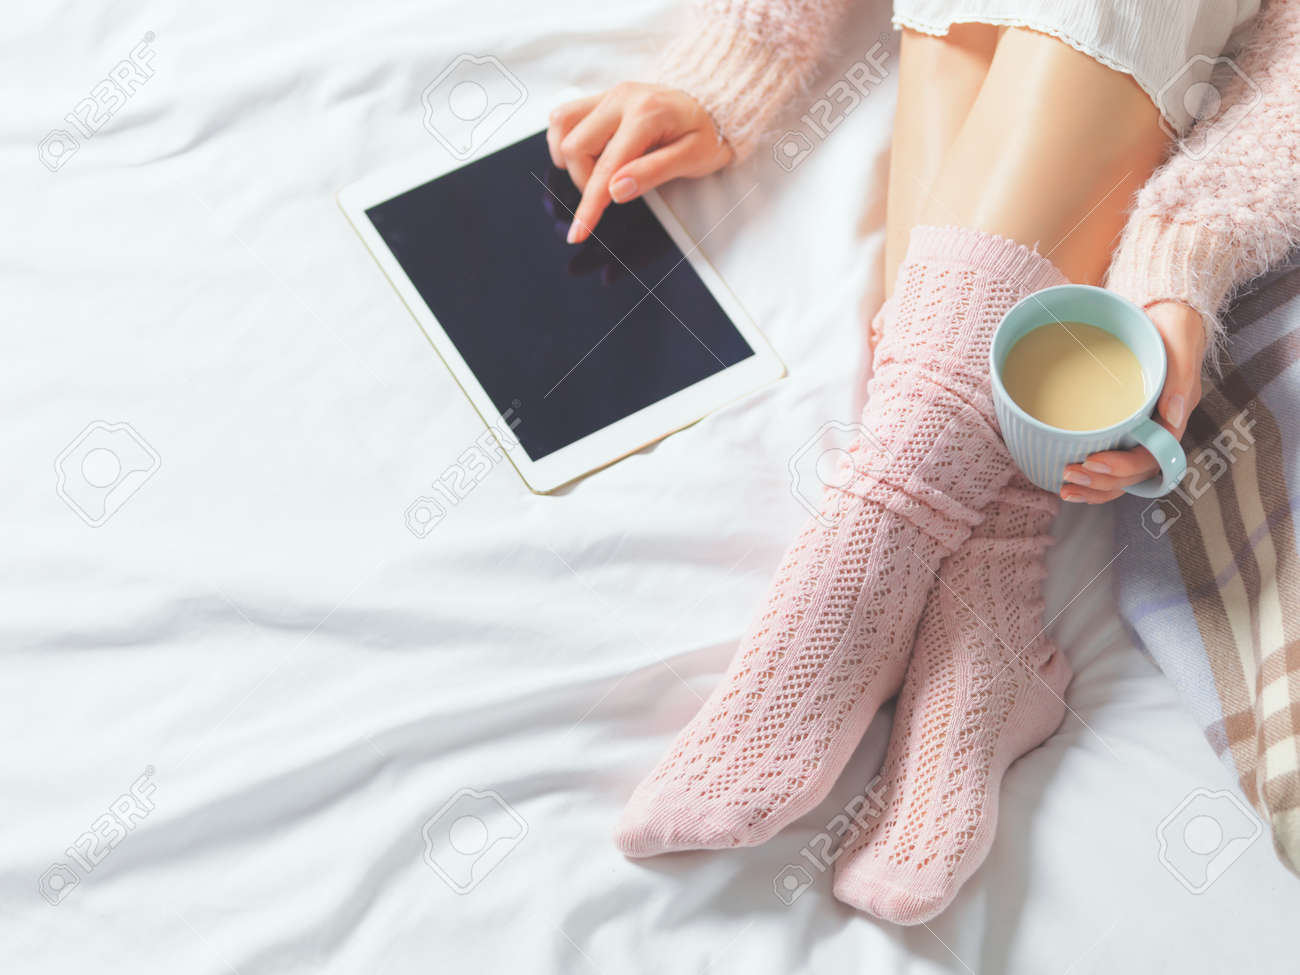 Woman using tablet at cozy home atmosphere on the bed. Young beautiful woman enjoying free time using technological device, holding a cup of cocoa or coffee. Soft light - 41581615